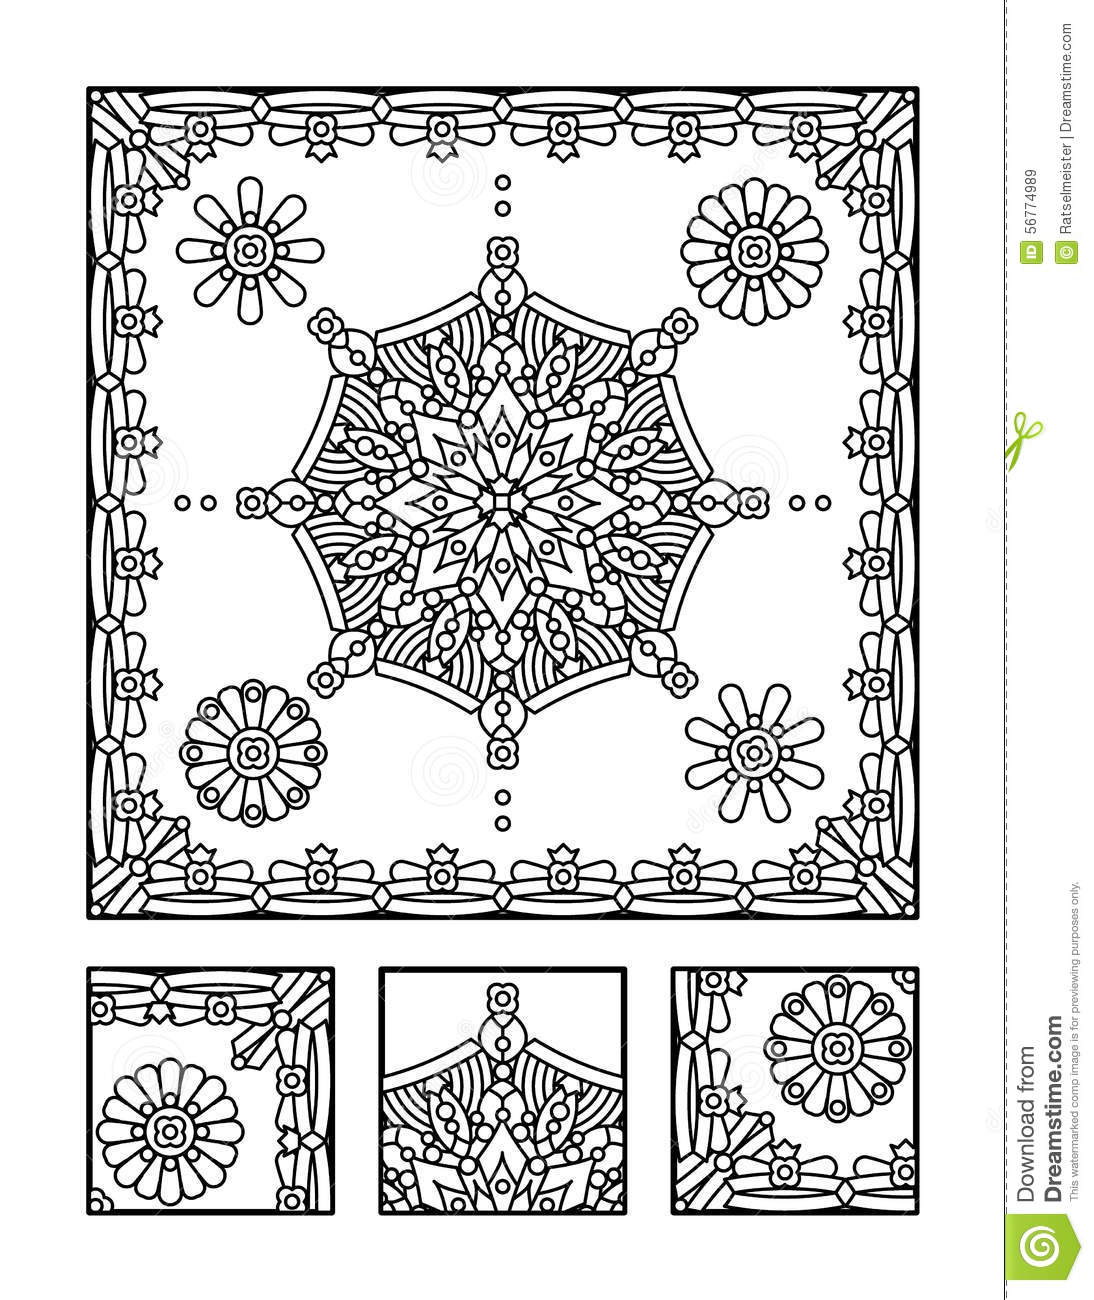 Stock Illustration Coloring Page Visual Puzzle Adults Framed Mandala Children Ok Too Directions Find Fragment Does Not Belong Image56774989 on visual business plan